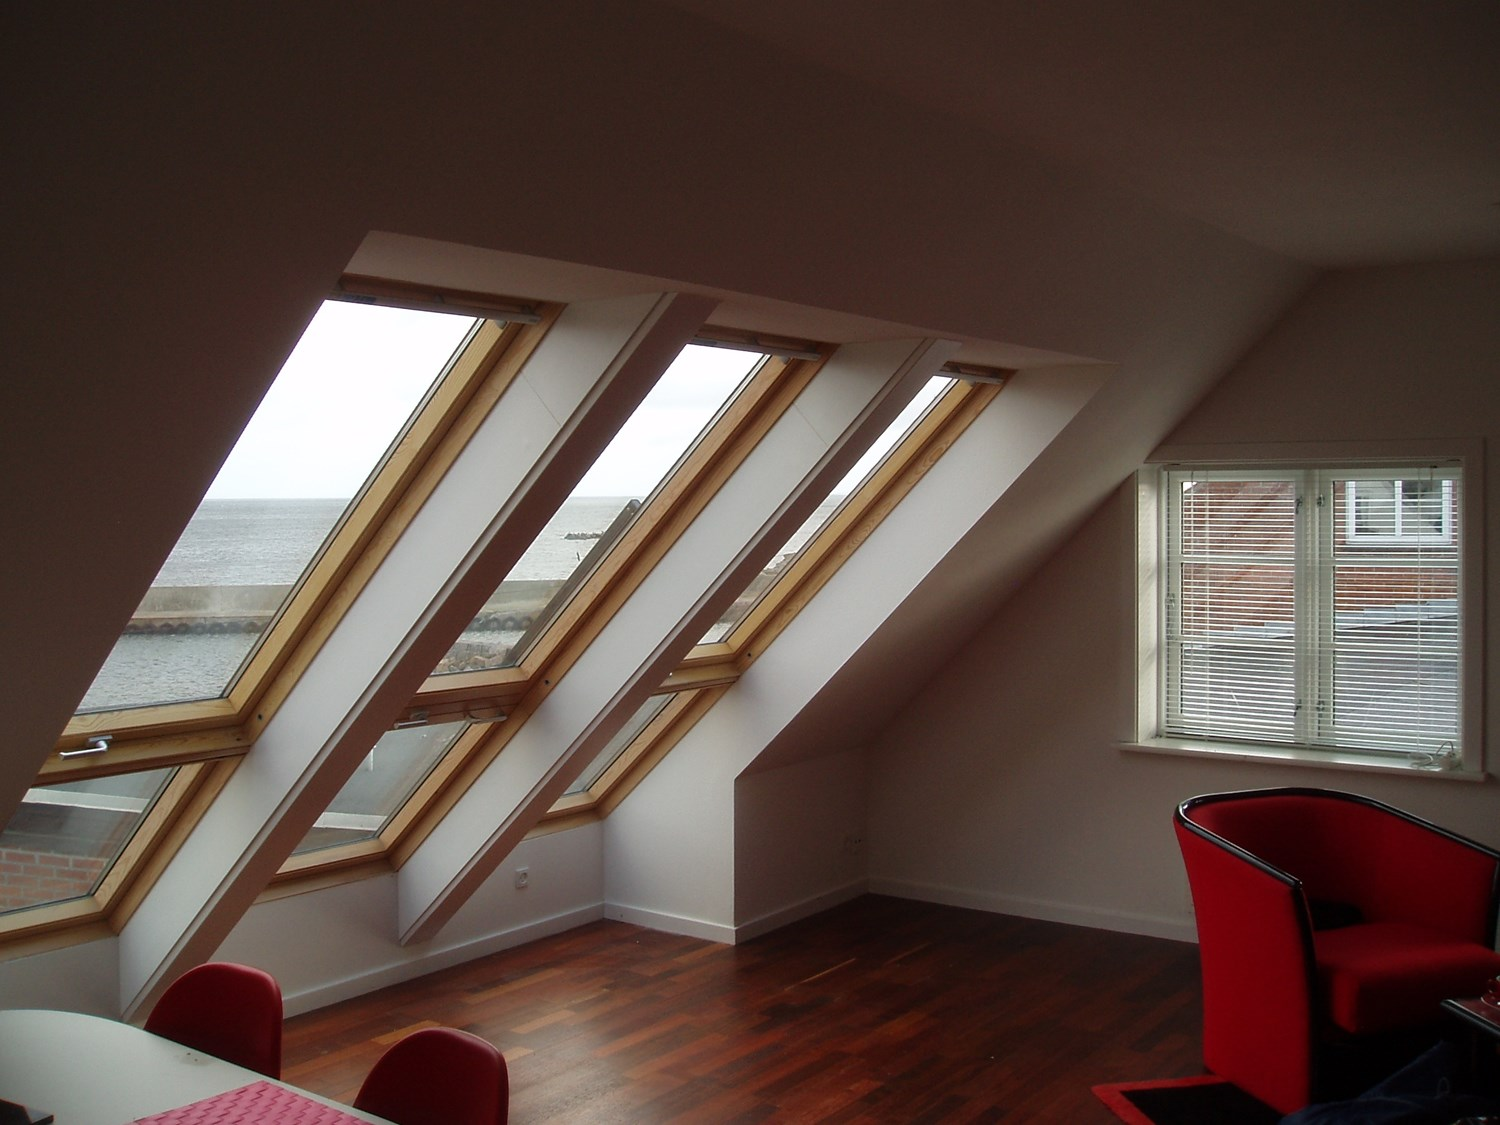 Picture of: Ovenlysvinduer Tagvinduer Velux Winther A S